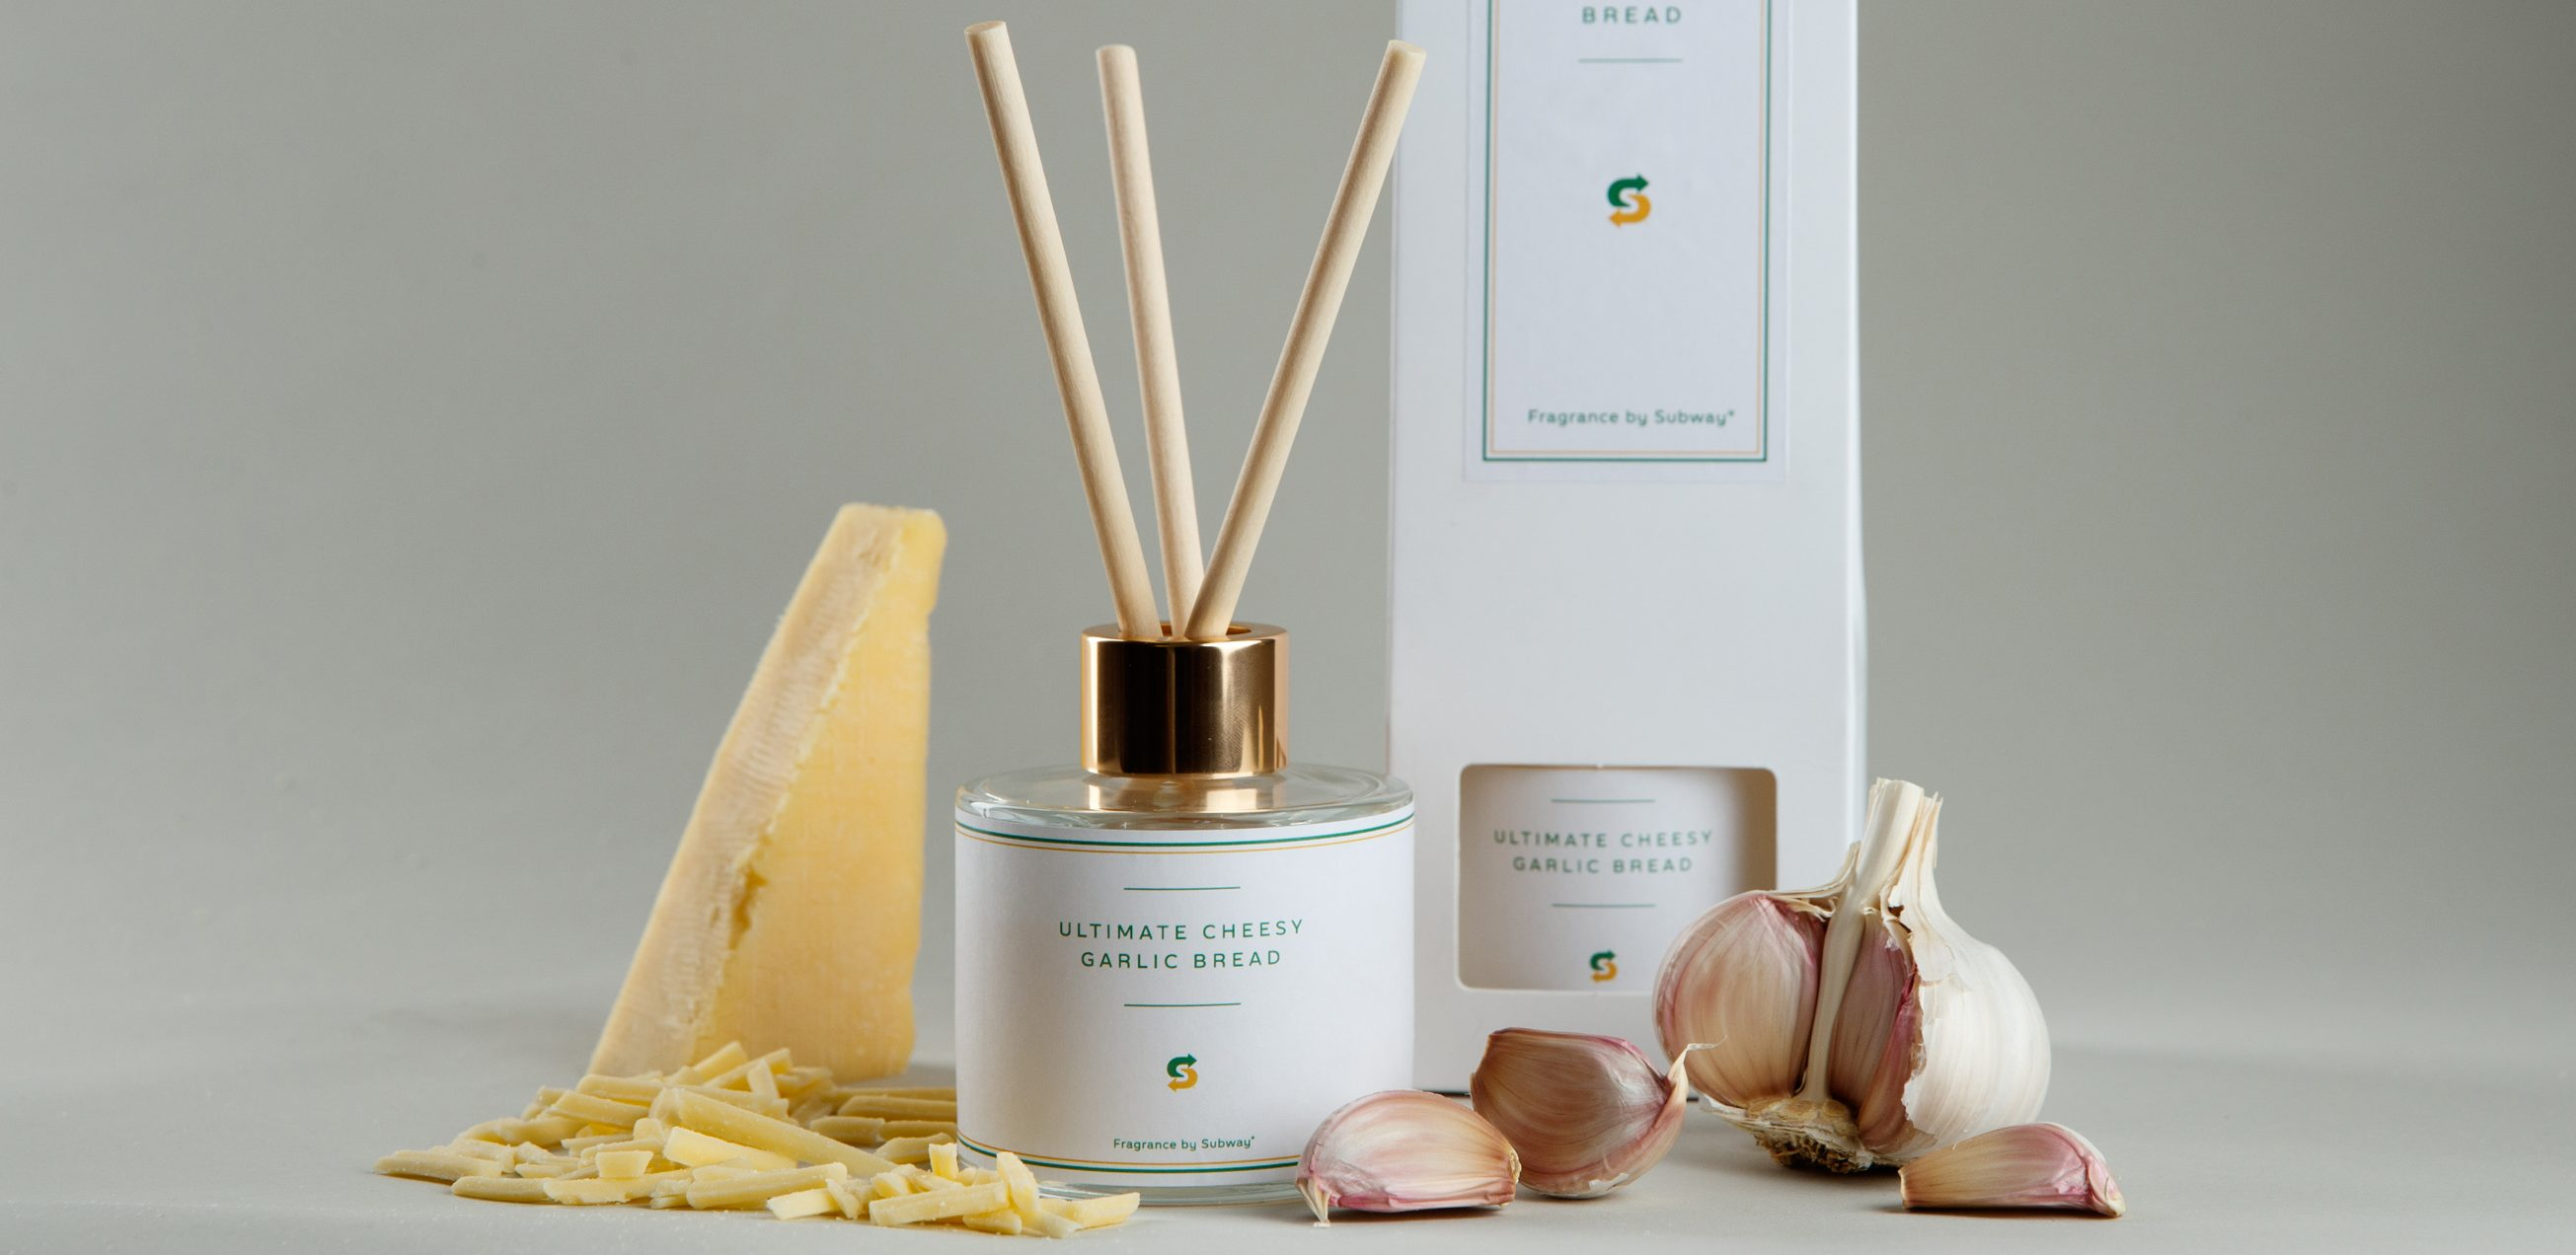 Subway launches a reed diffuser to make your home smell like cheesy garlic bread